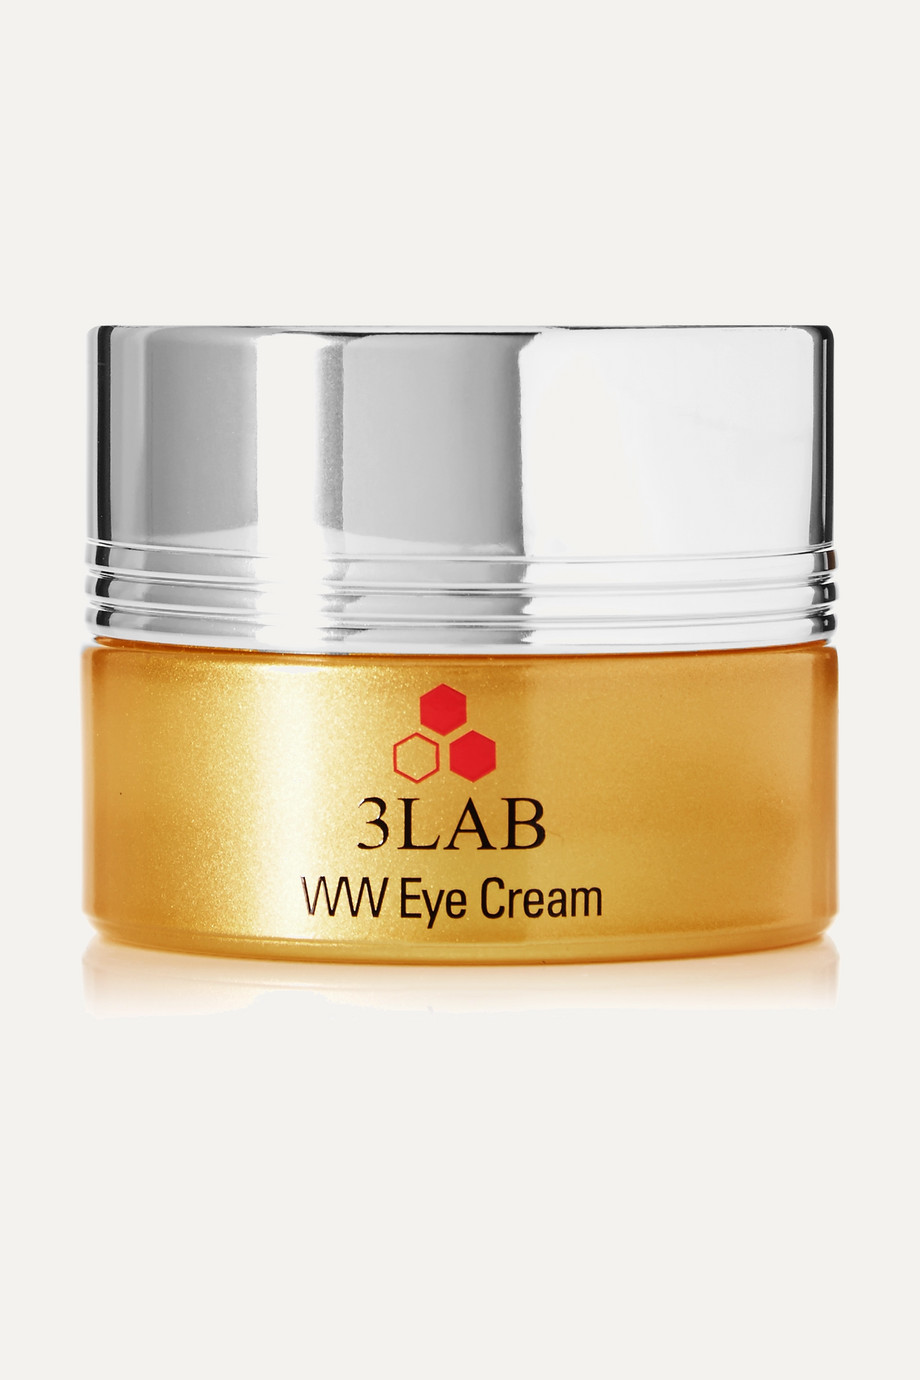 3LAB WW Eye Cream, 14 ml – Augencreme